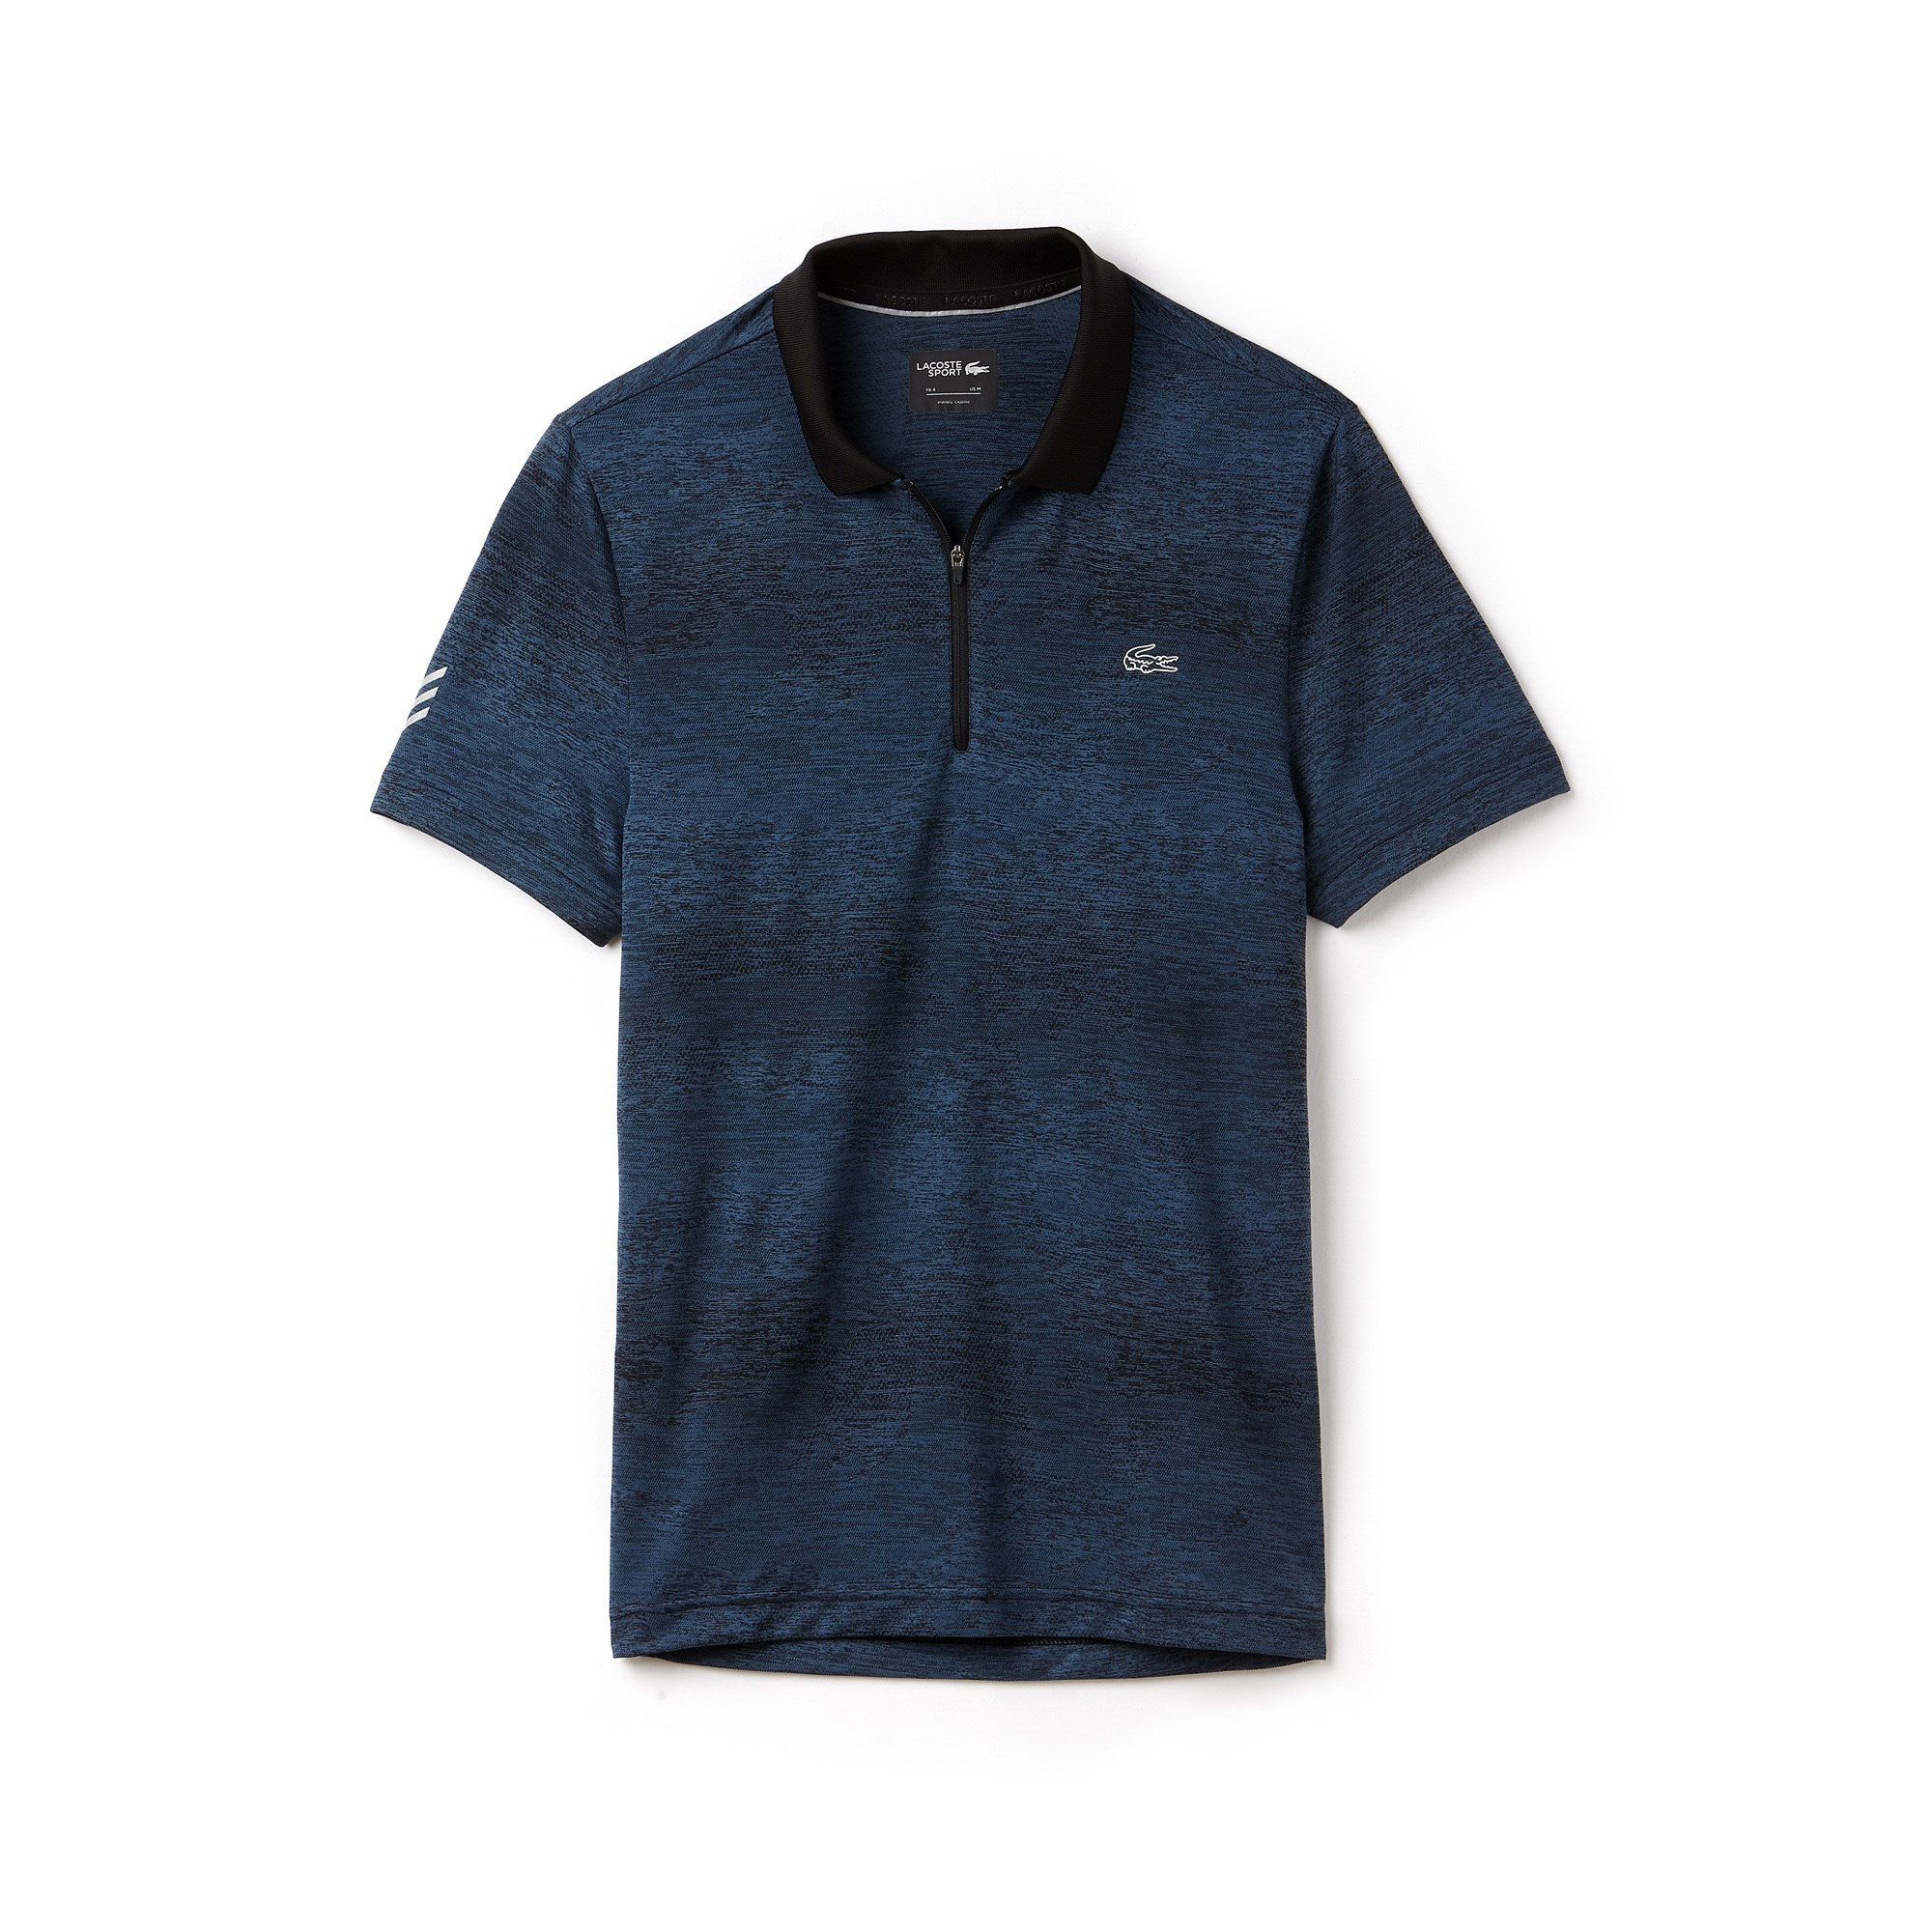 Men's Lacoste SPORT Zip Neck Print Technical Jersey Tennis Polo Shirt